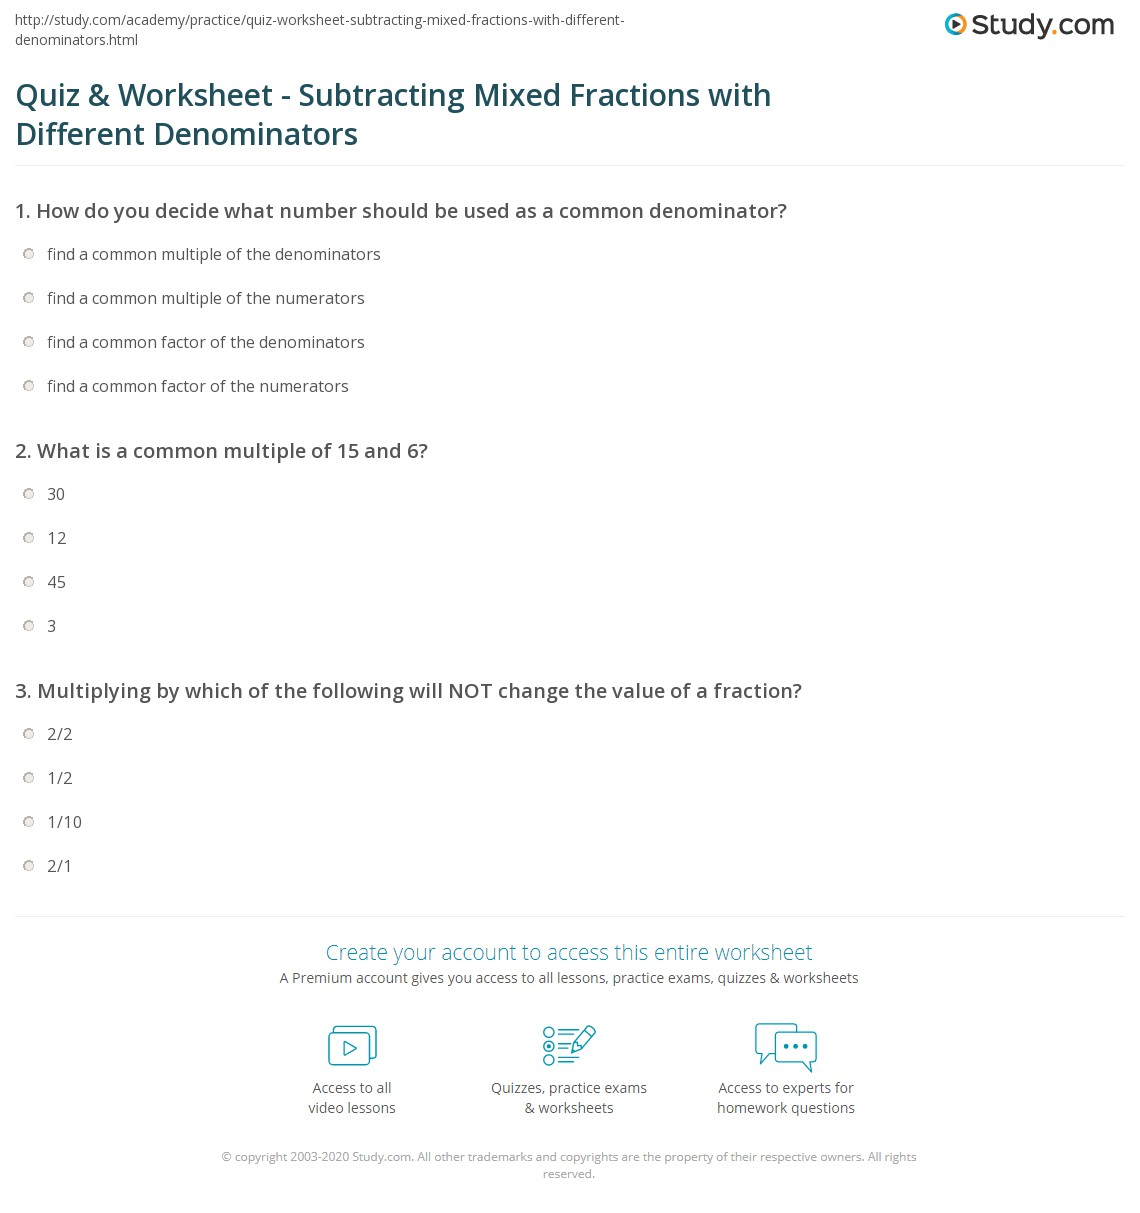 Quiz Worksheet Subtracting Mixed Fractions With Different